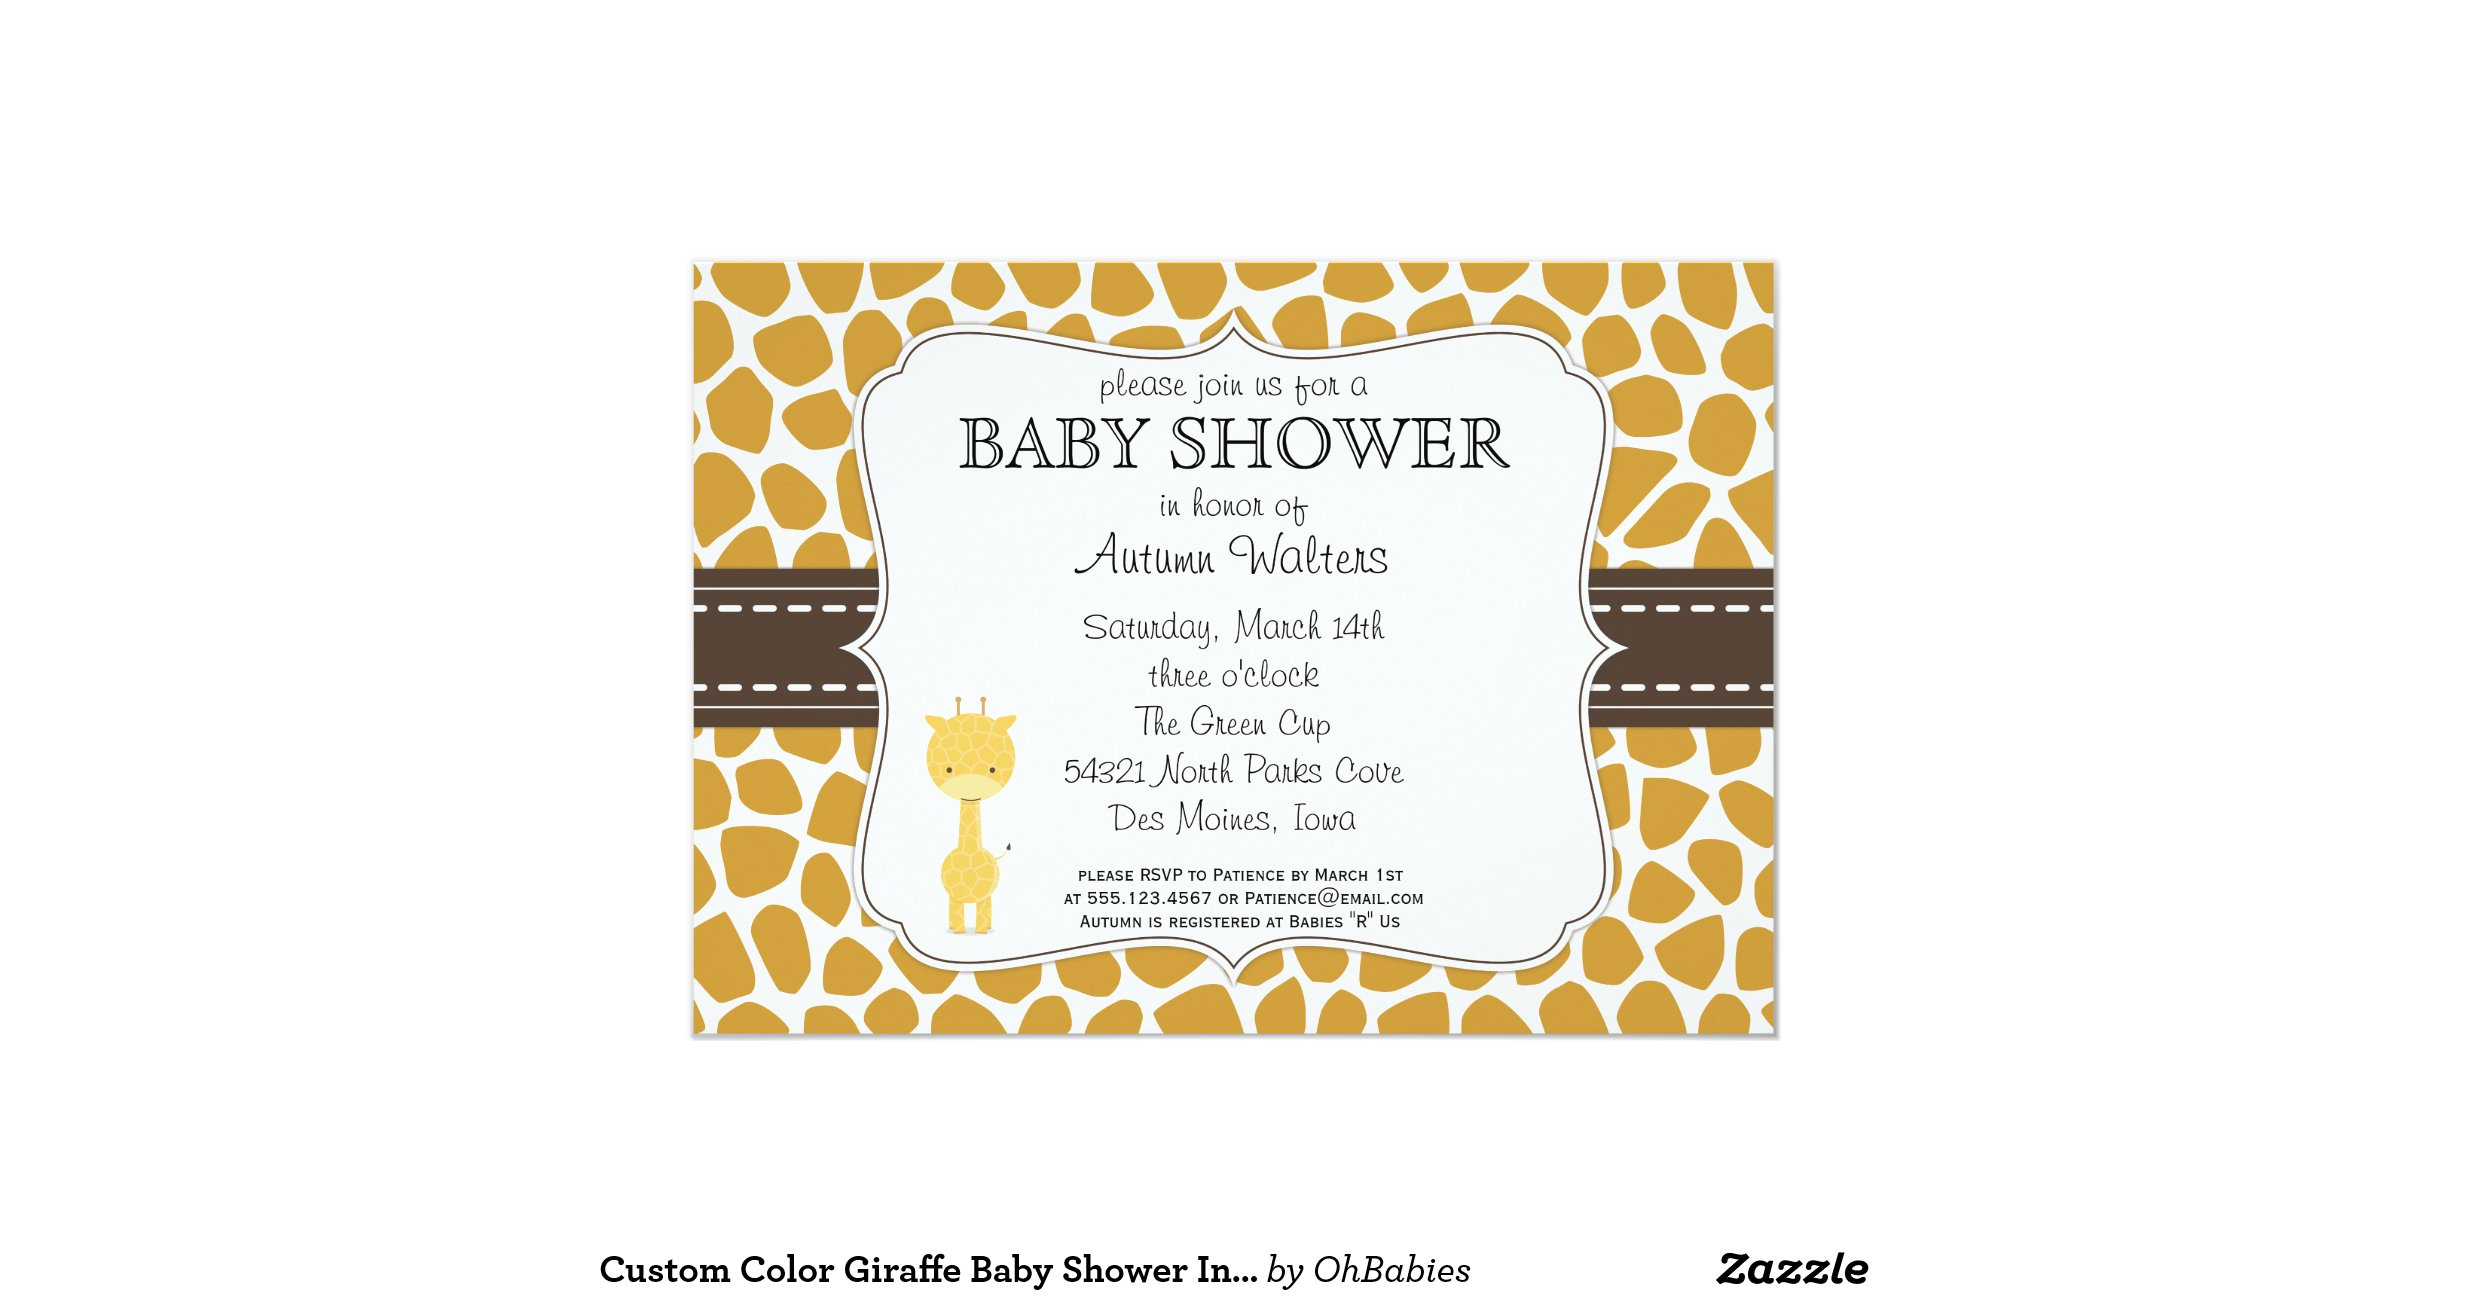 custom color giraffe baby shower invitations